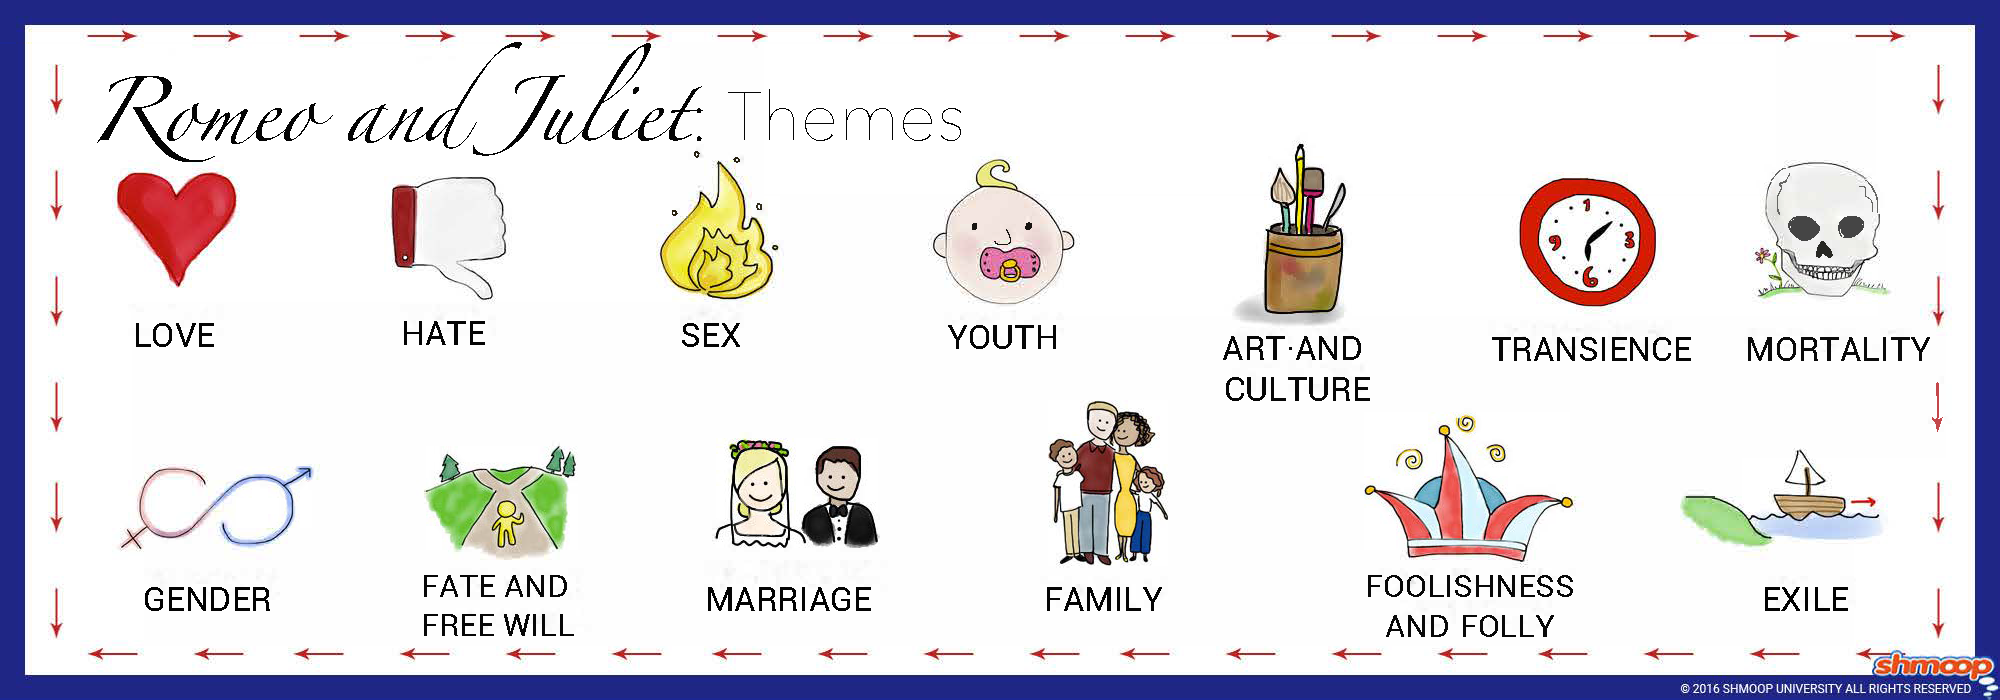 symbolism in romeo and juliet chart symbolism